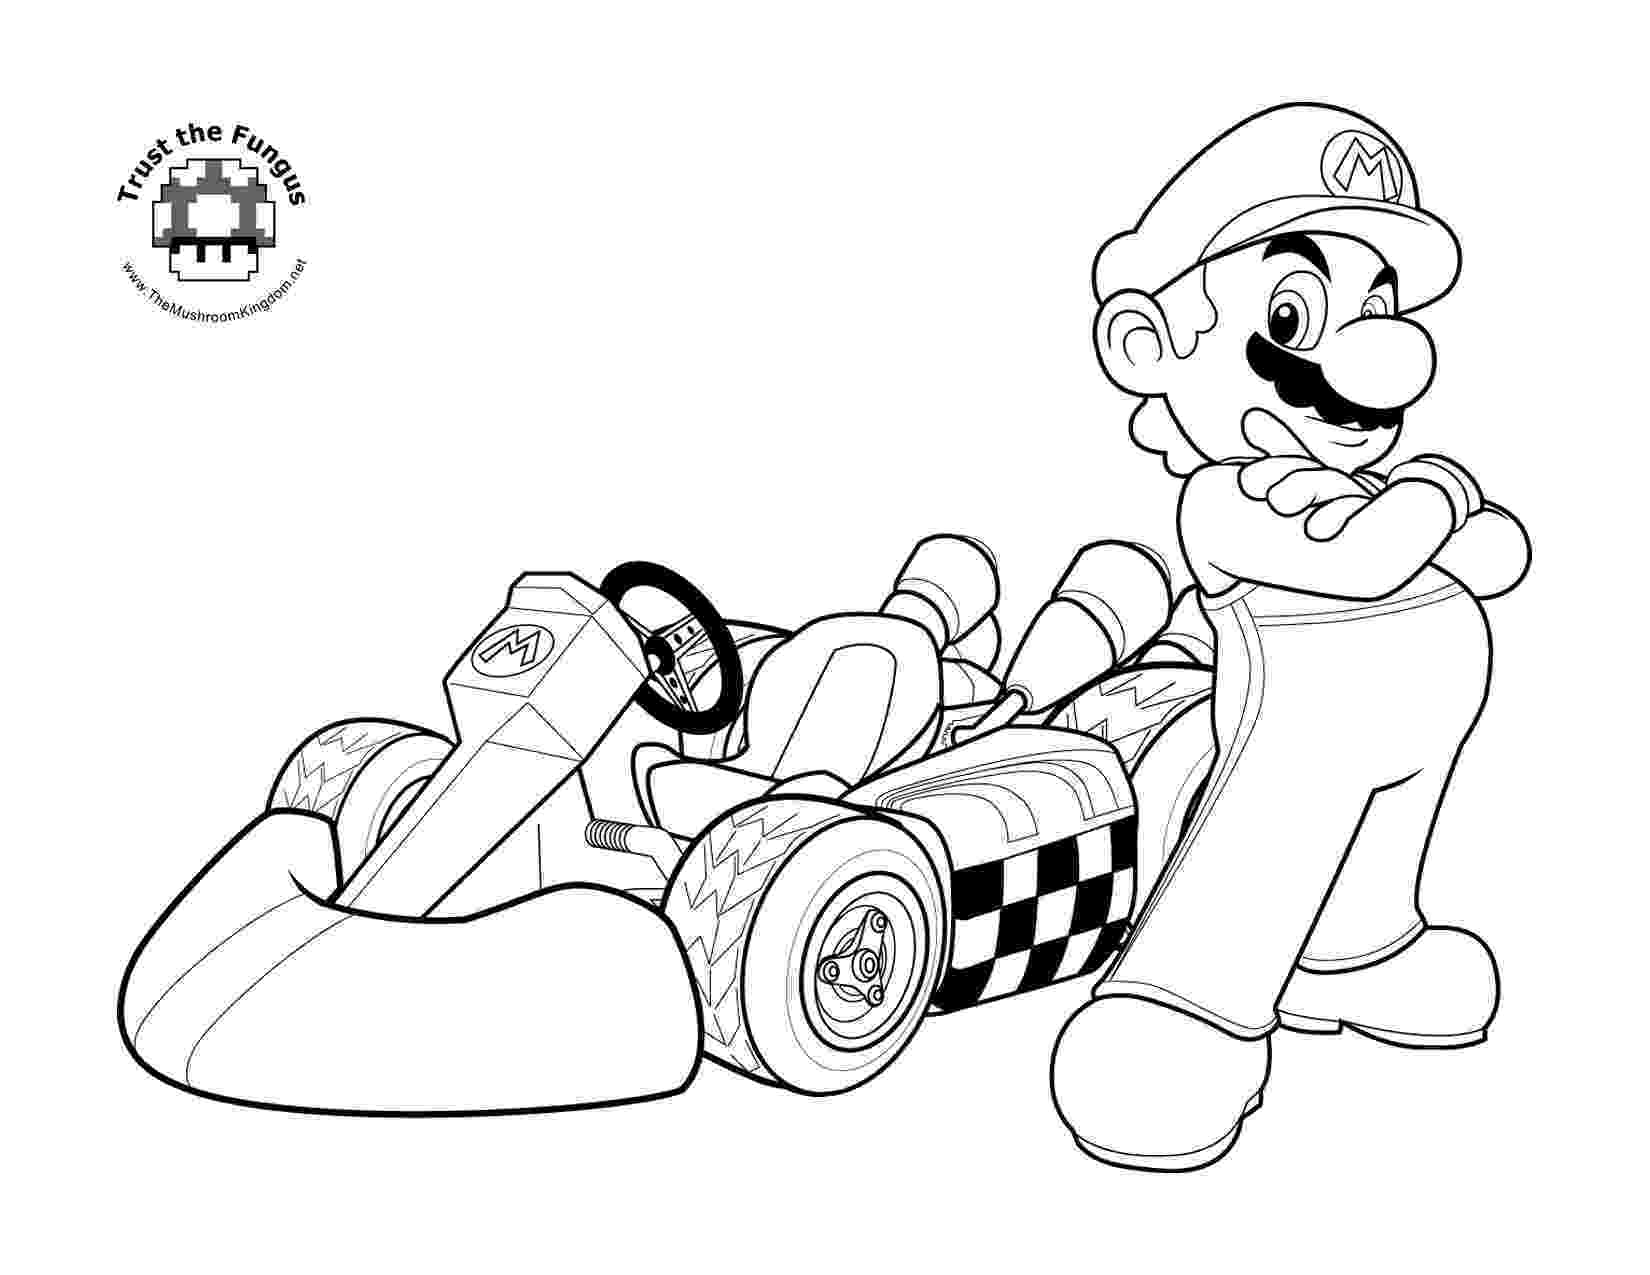 mario kart wii coloring pages tmk blog archive 2008 mario coloring wii kart pages